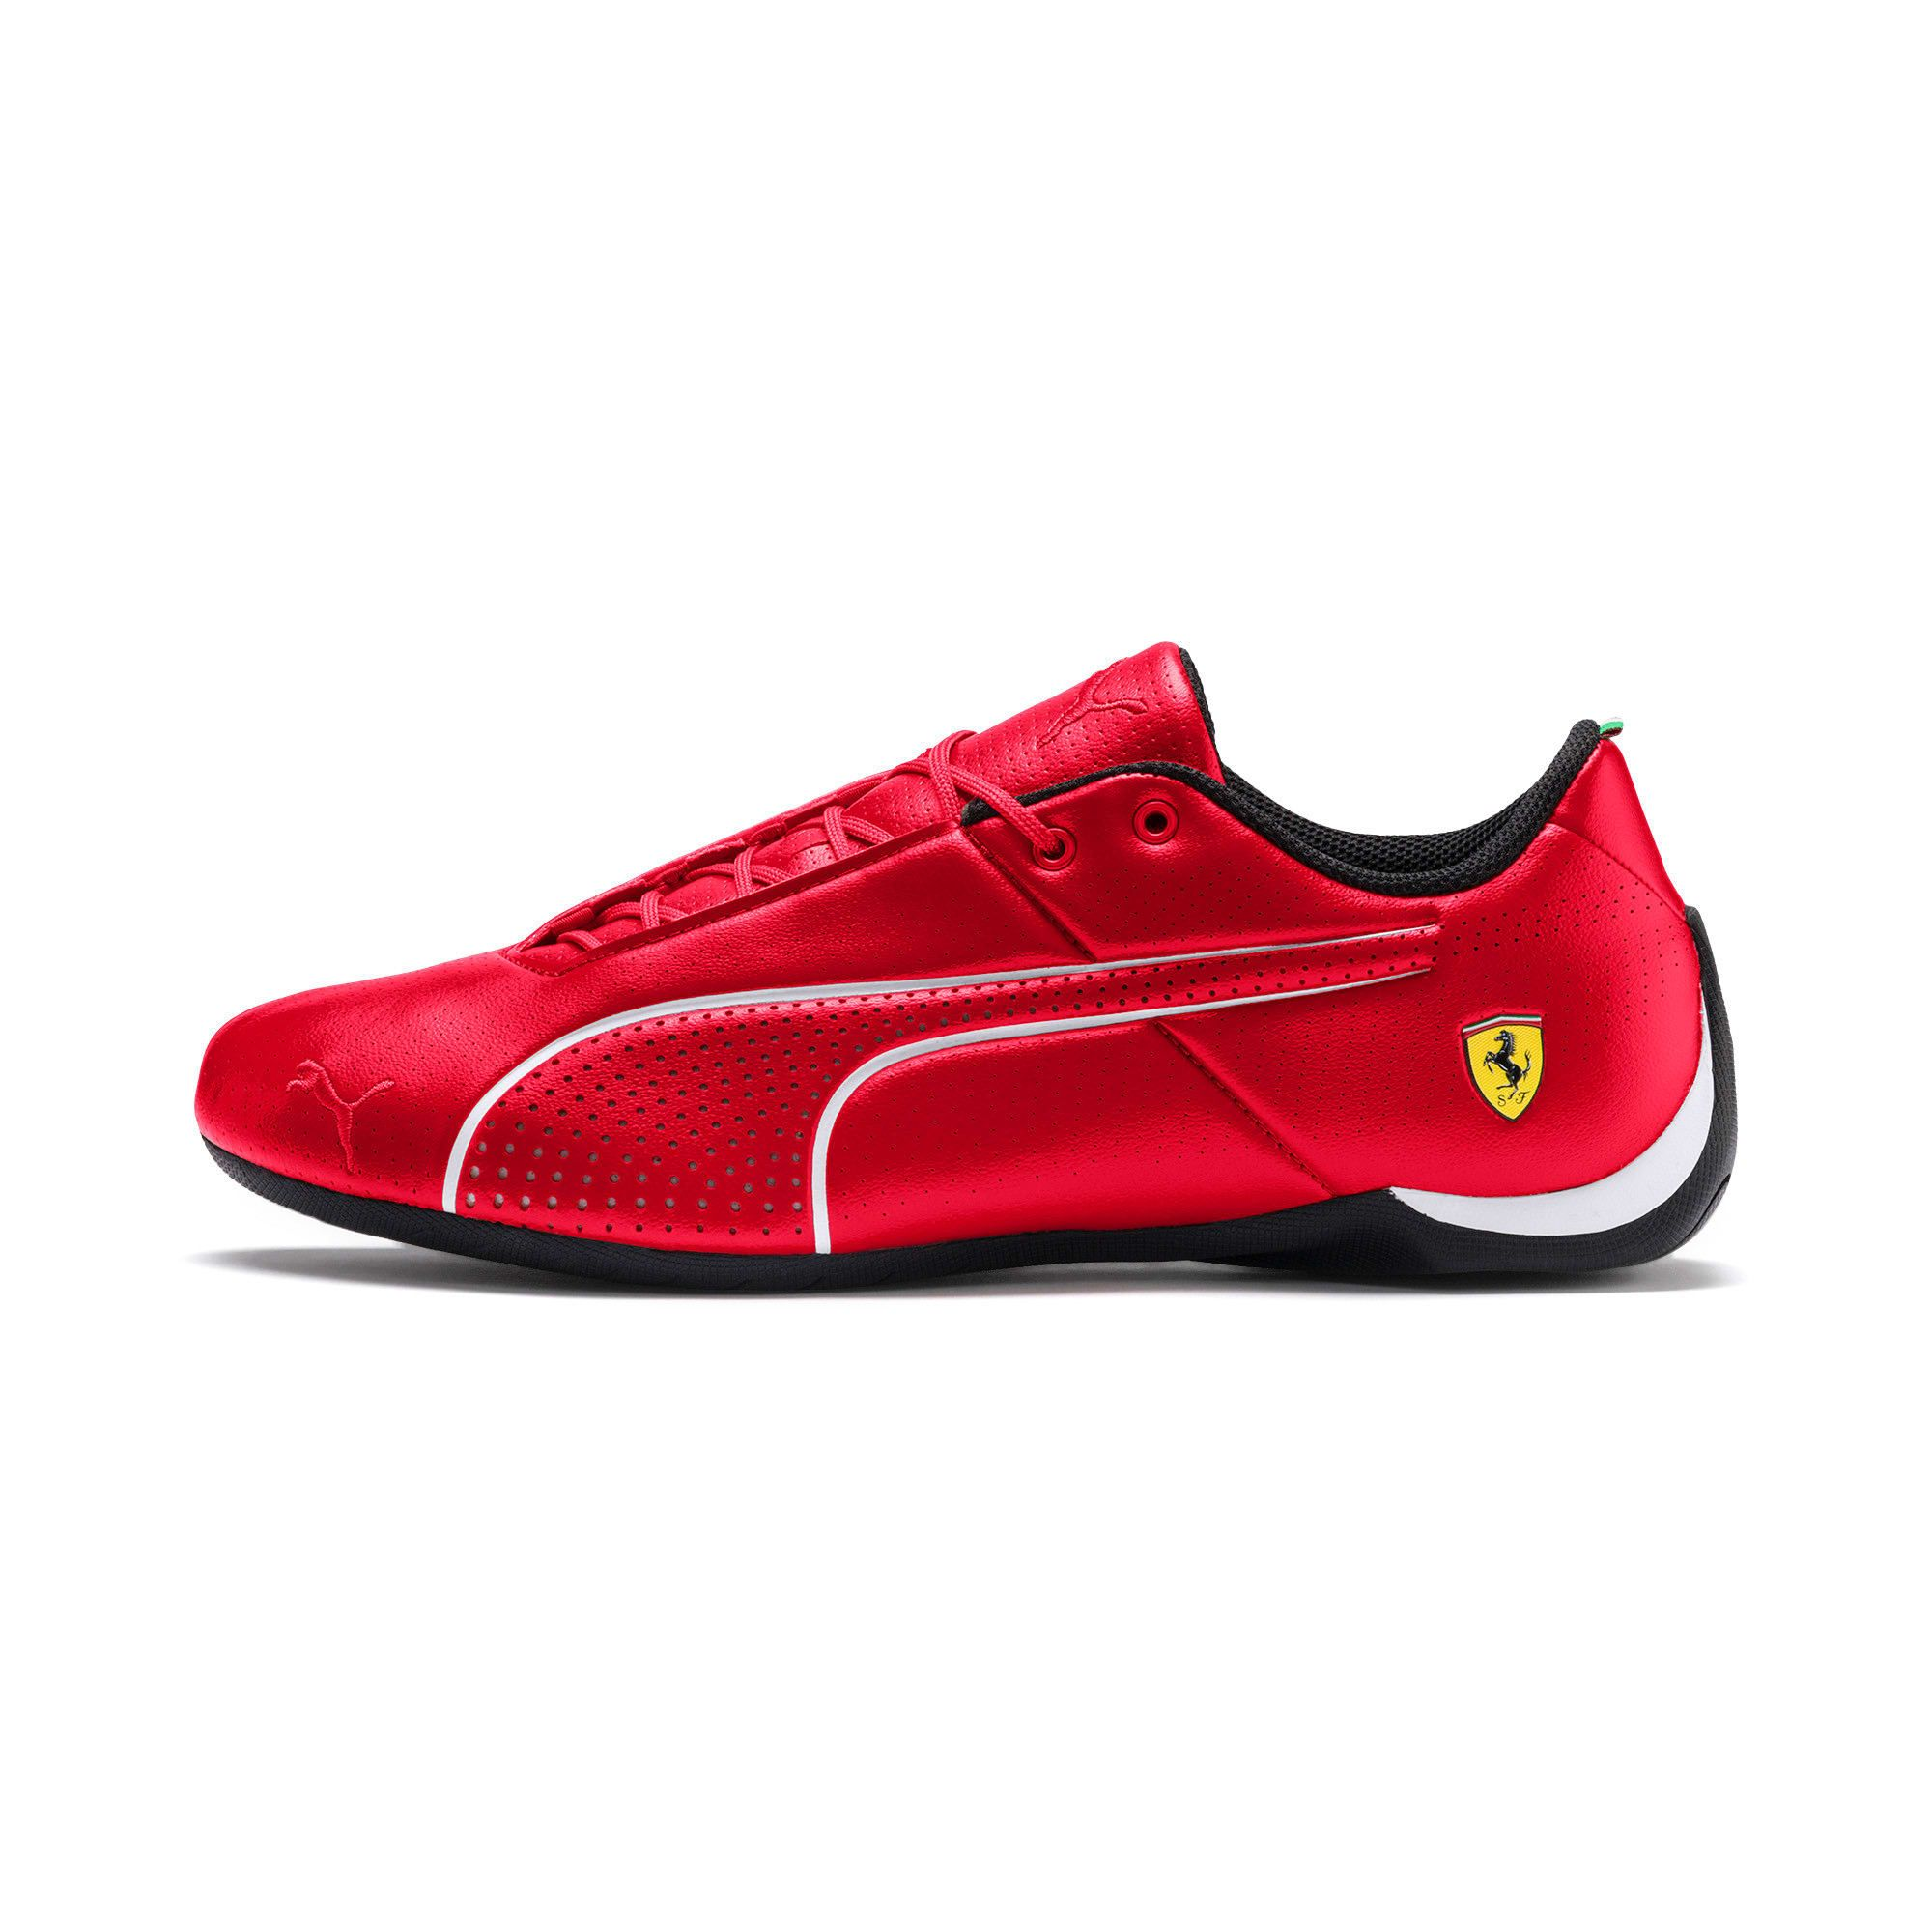 PUMA Ferrari Future Cat Ultra Trainers in Red size 10.5 #newferrari